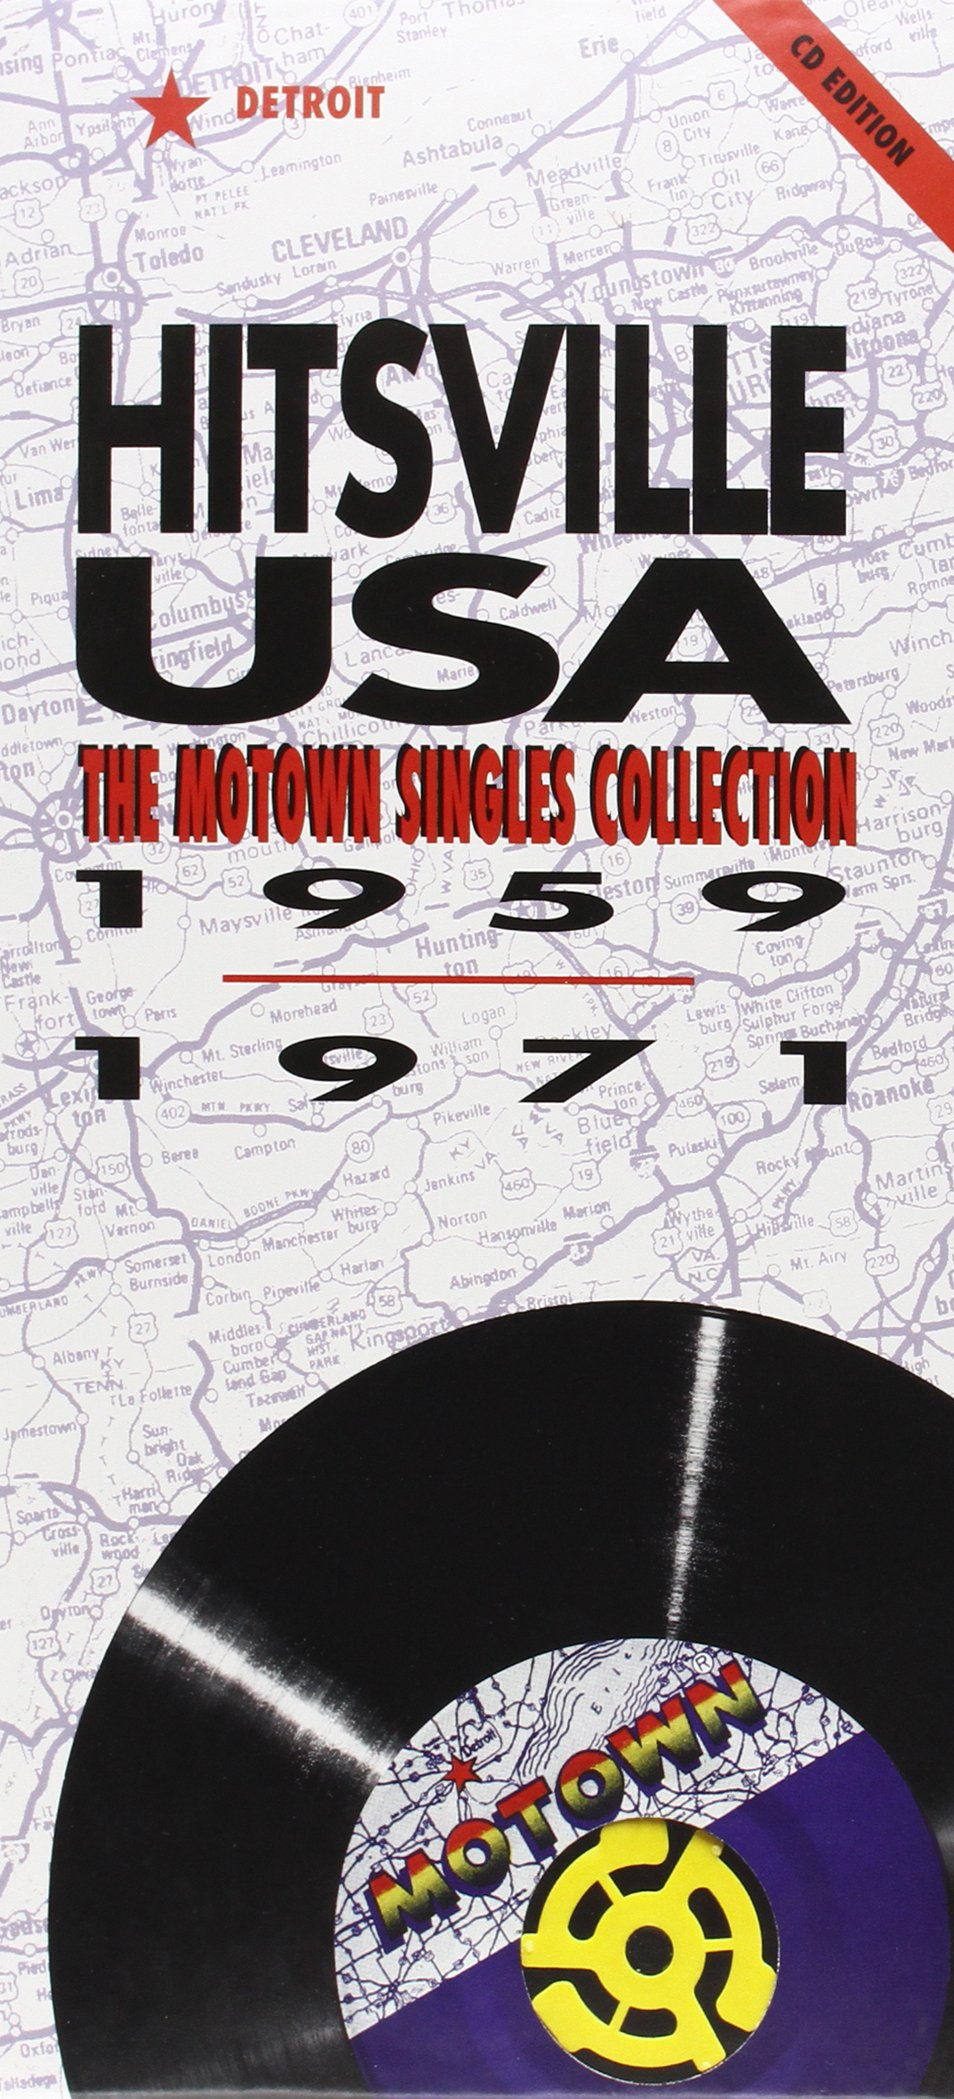 Hitsville USA: The Motown Singles Collection 1959-1971 by Motown